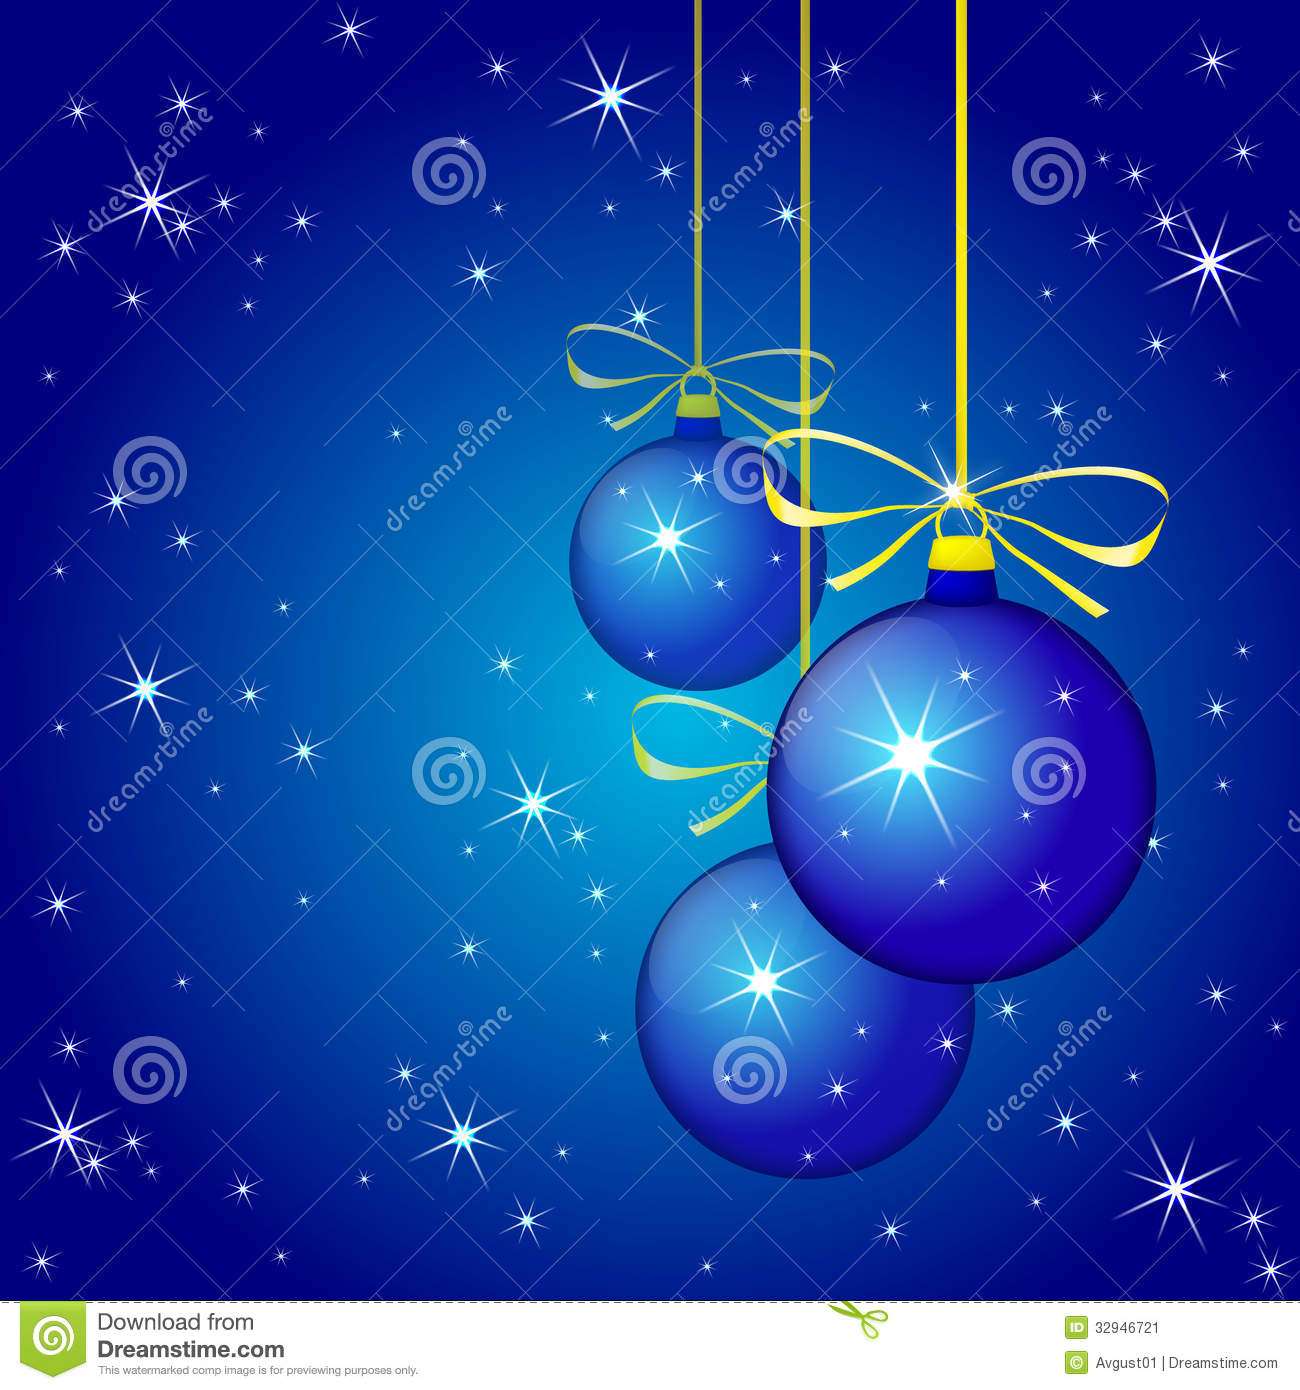 Blue Christmas Tree Wallpaper: Winter Background With Blue Christmas Balls. Vecto Stock